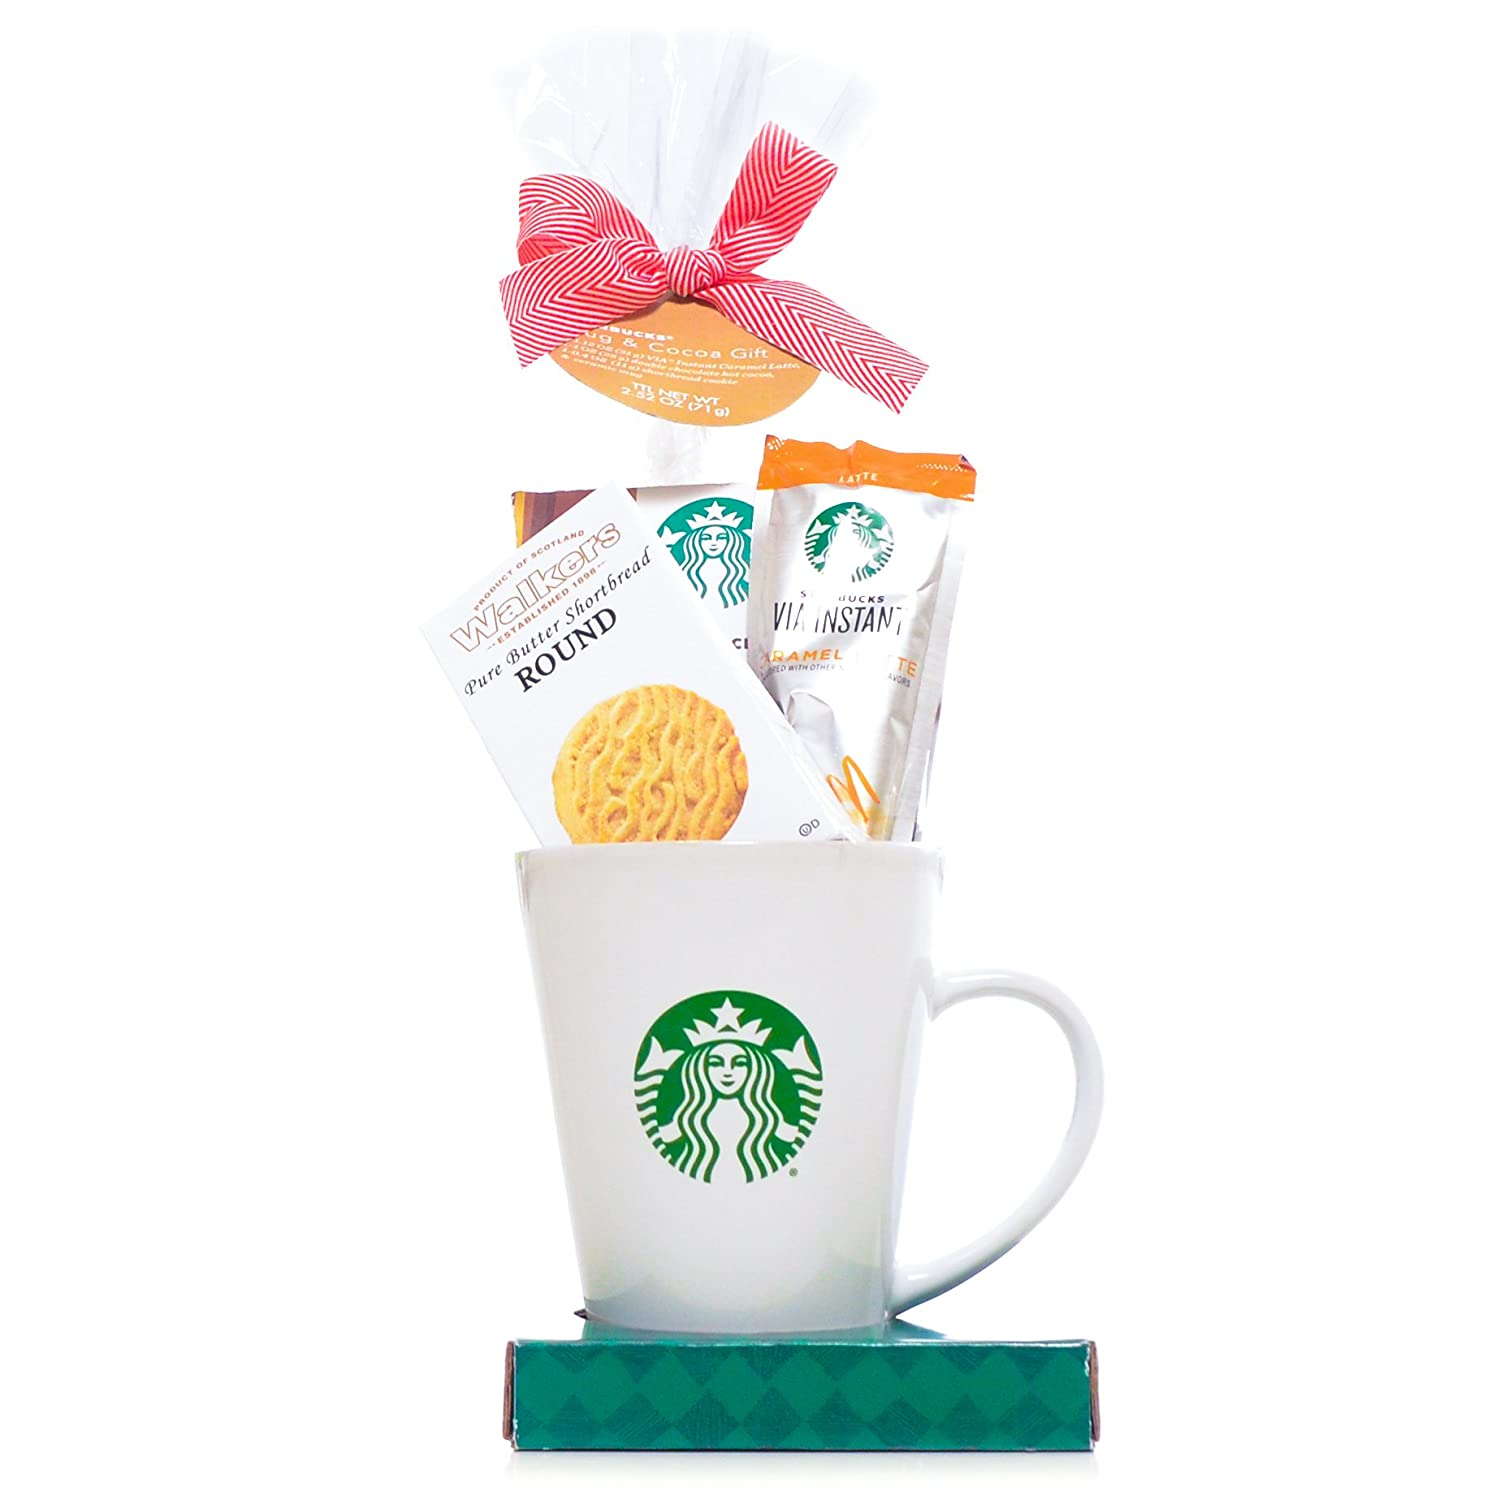 Starbucks Tall Mug Gift Set by Milliard